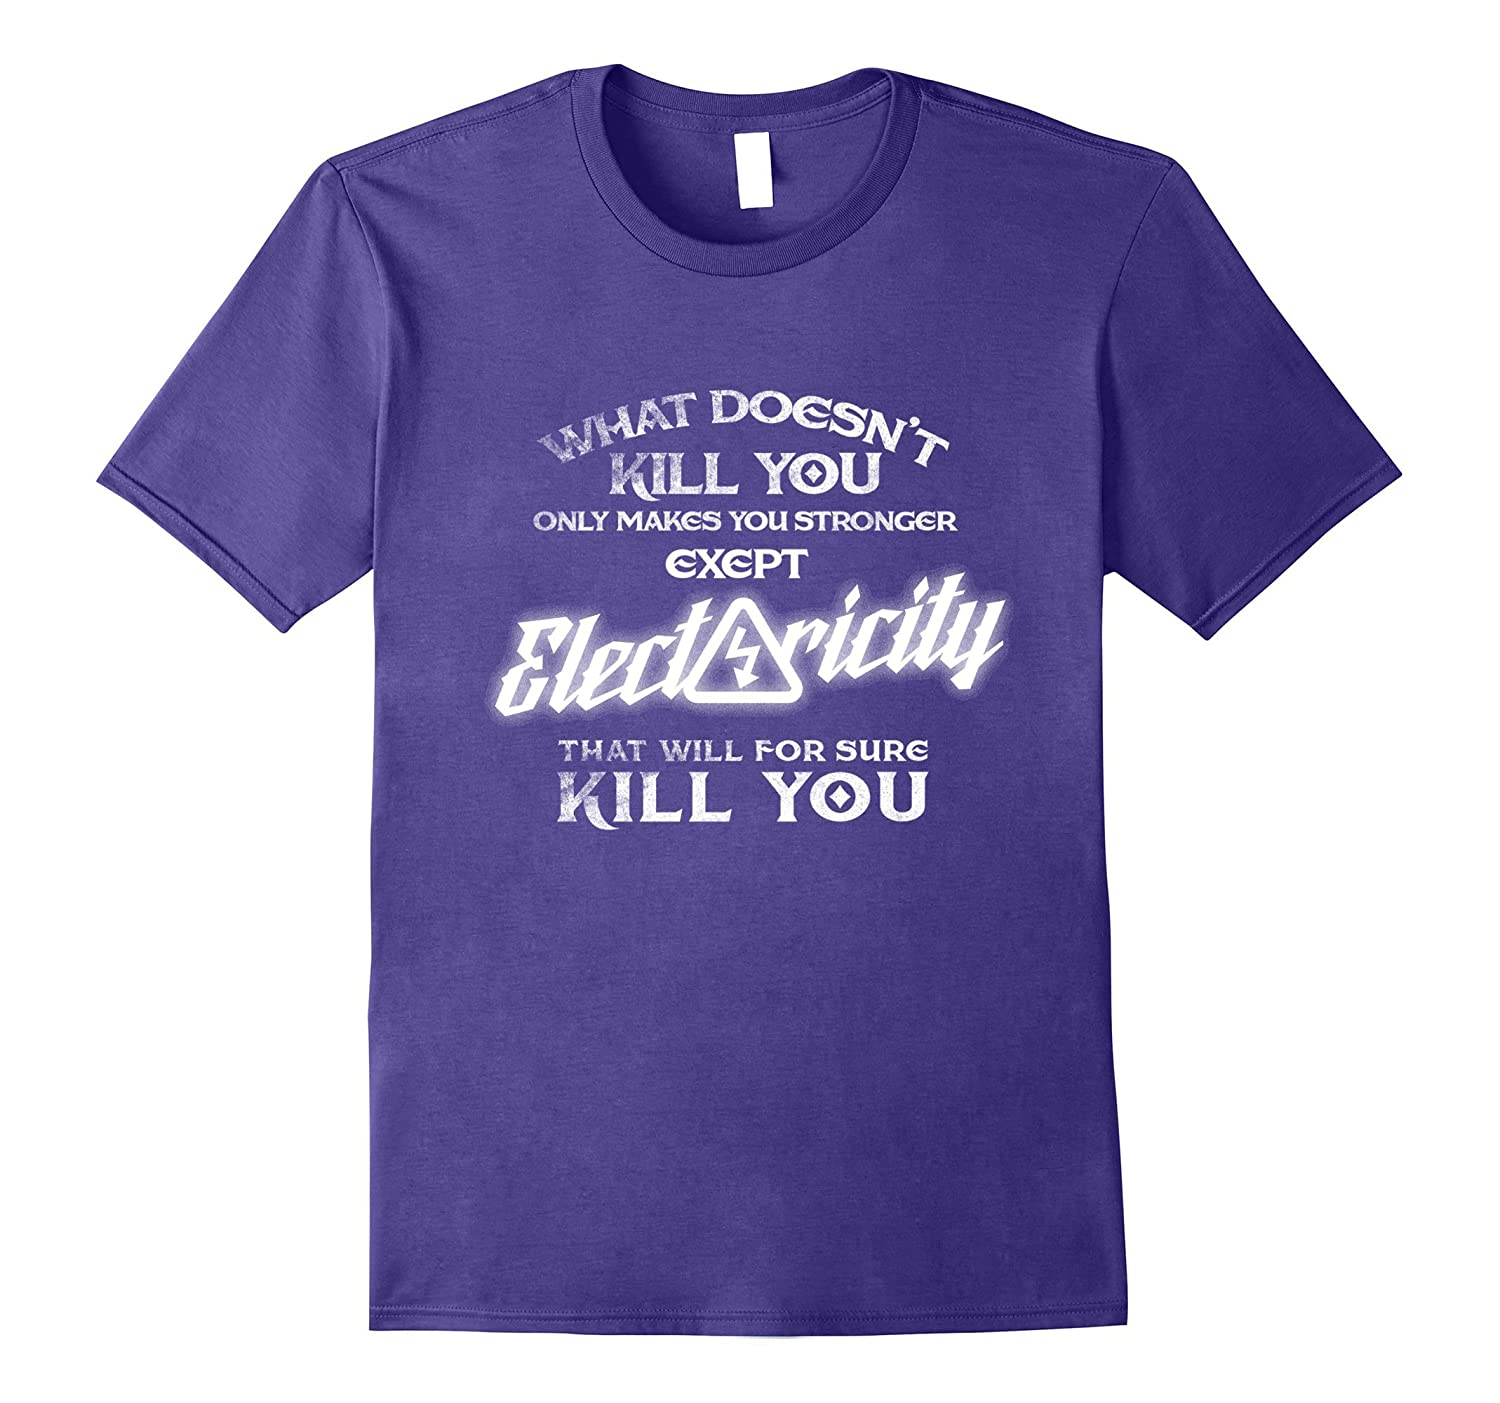 Electricity Will Kill You Funny Shirt Proud Electrician Tee-TJ